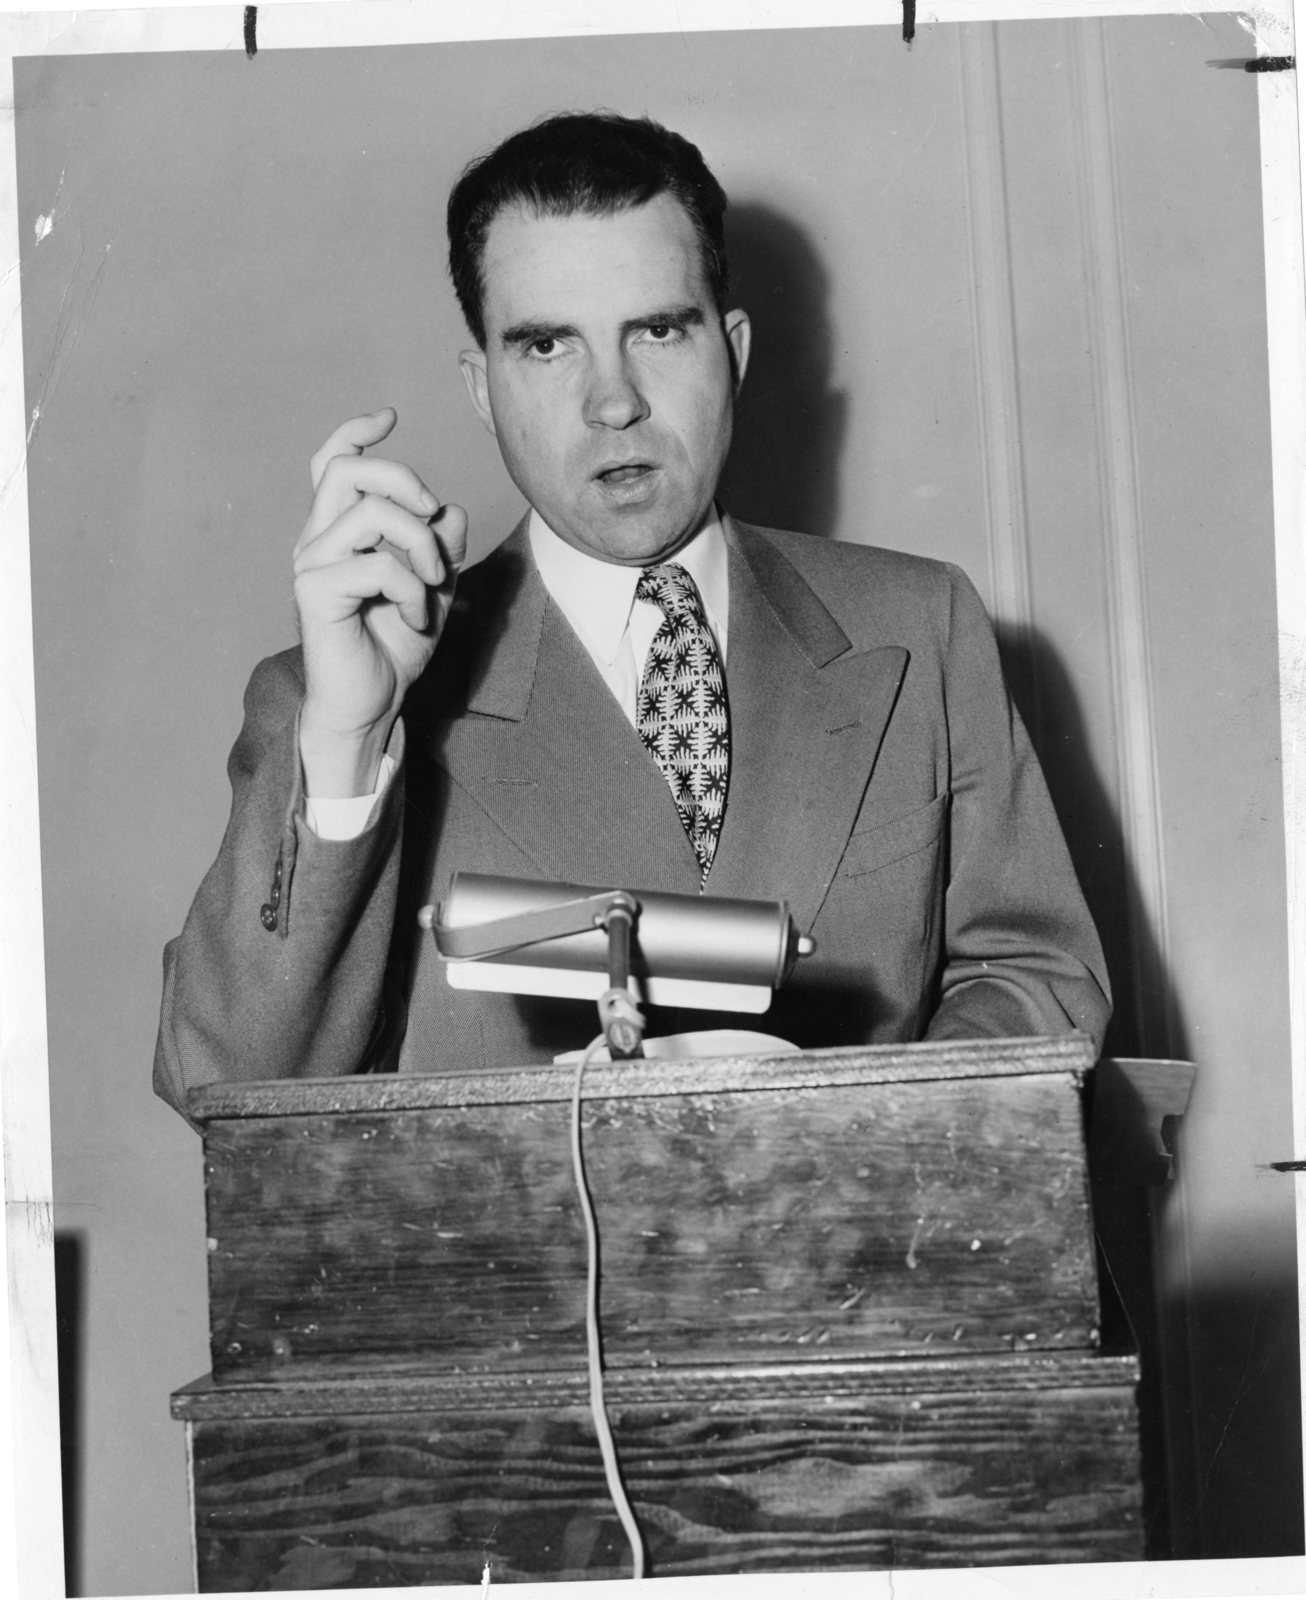 Richard Nixon stands behind a podium and speaks during his Senatorial campaign